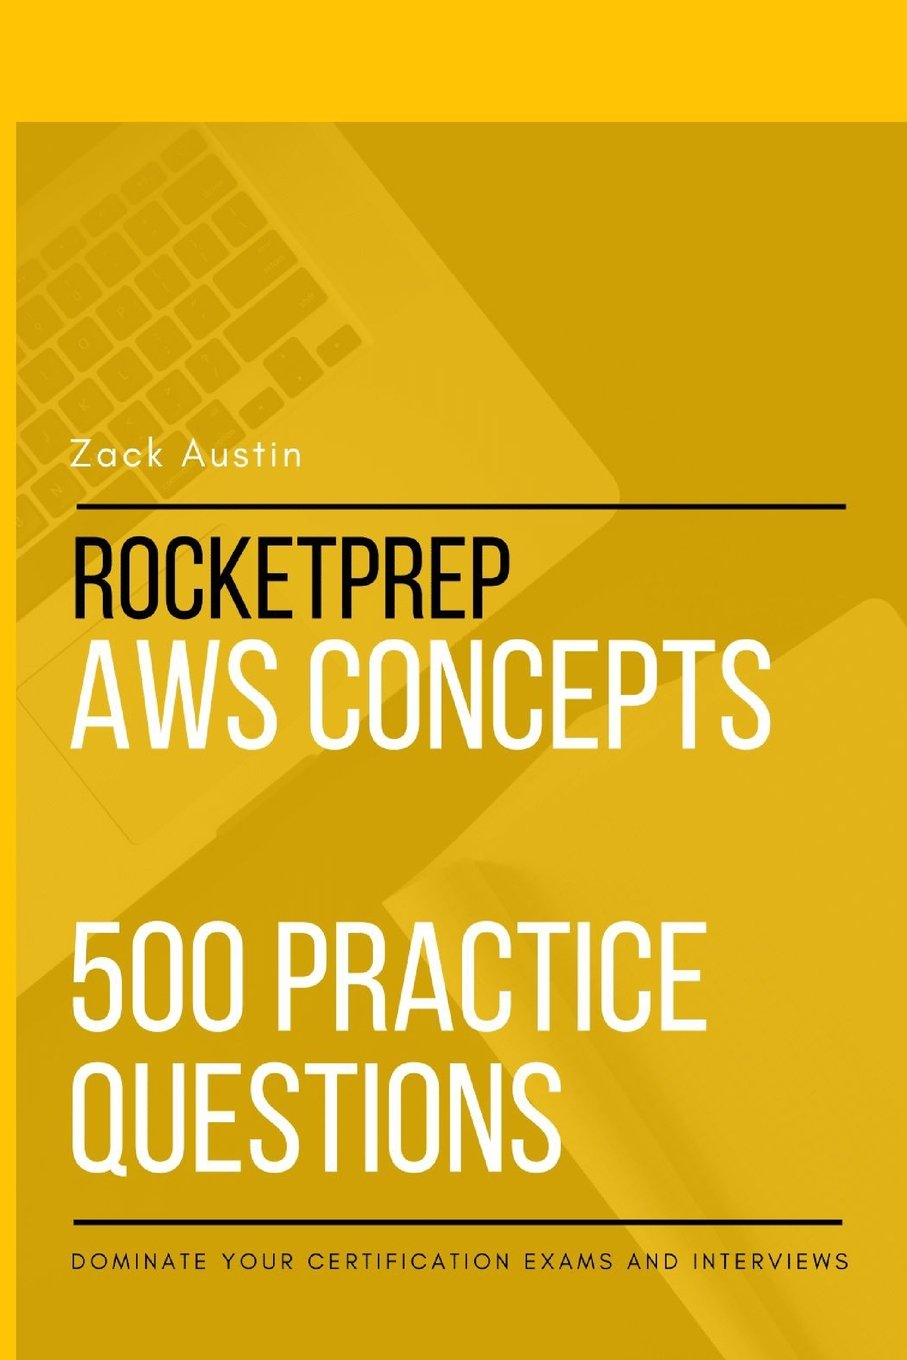 Rocketprep Aws Concepts 500 Practice Questions Dominate Your